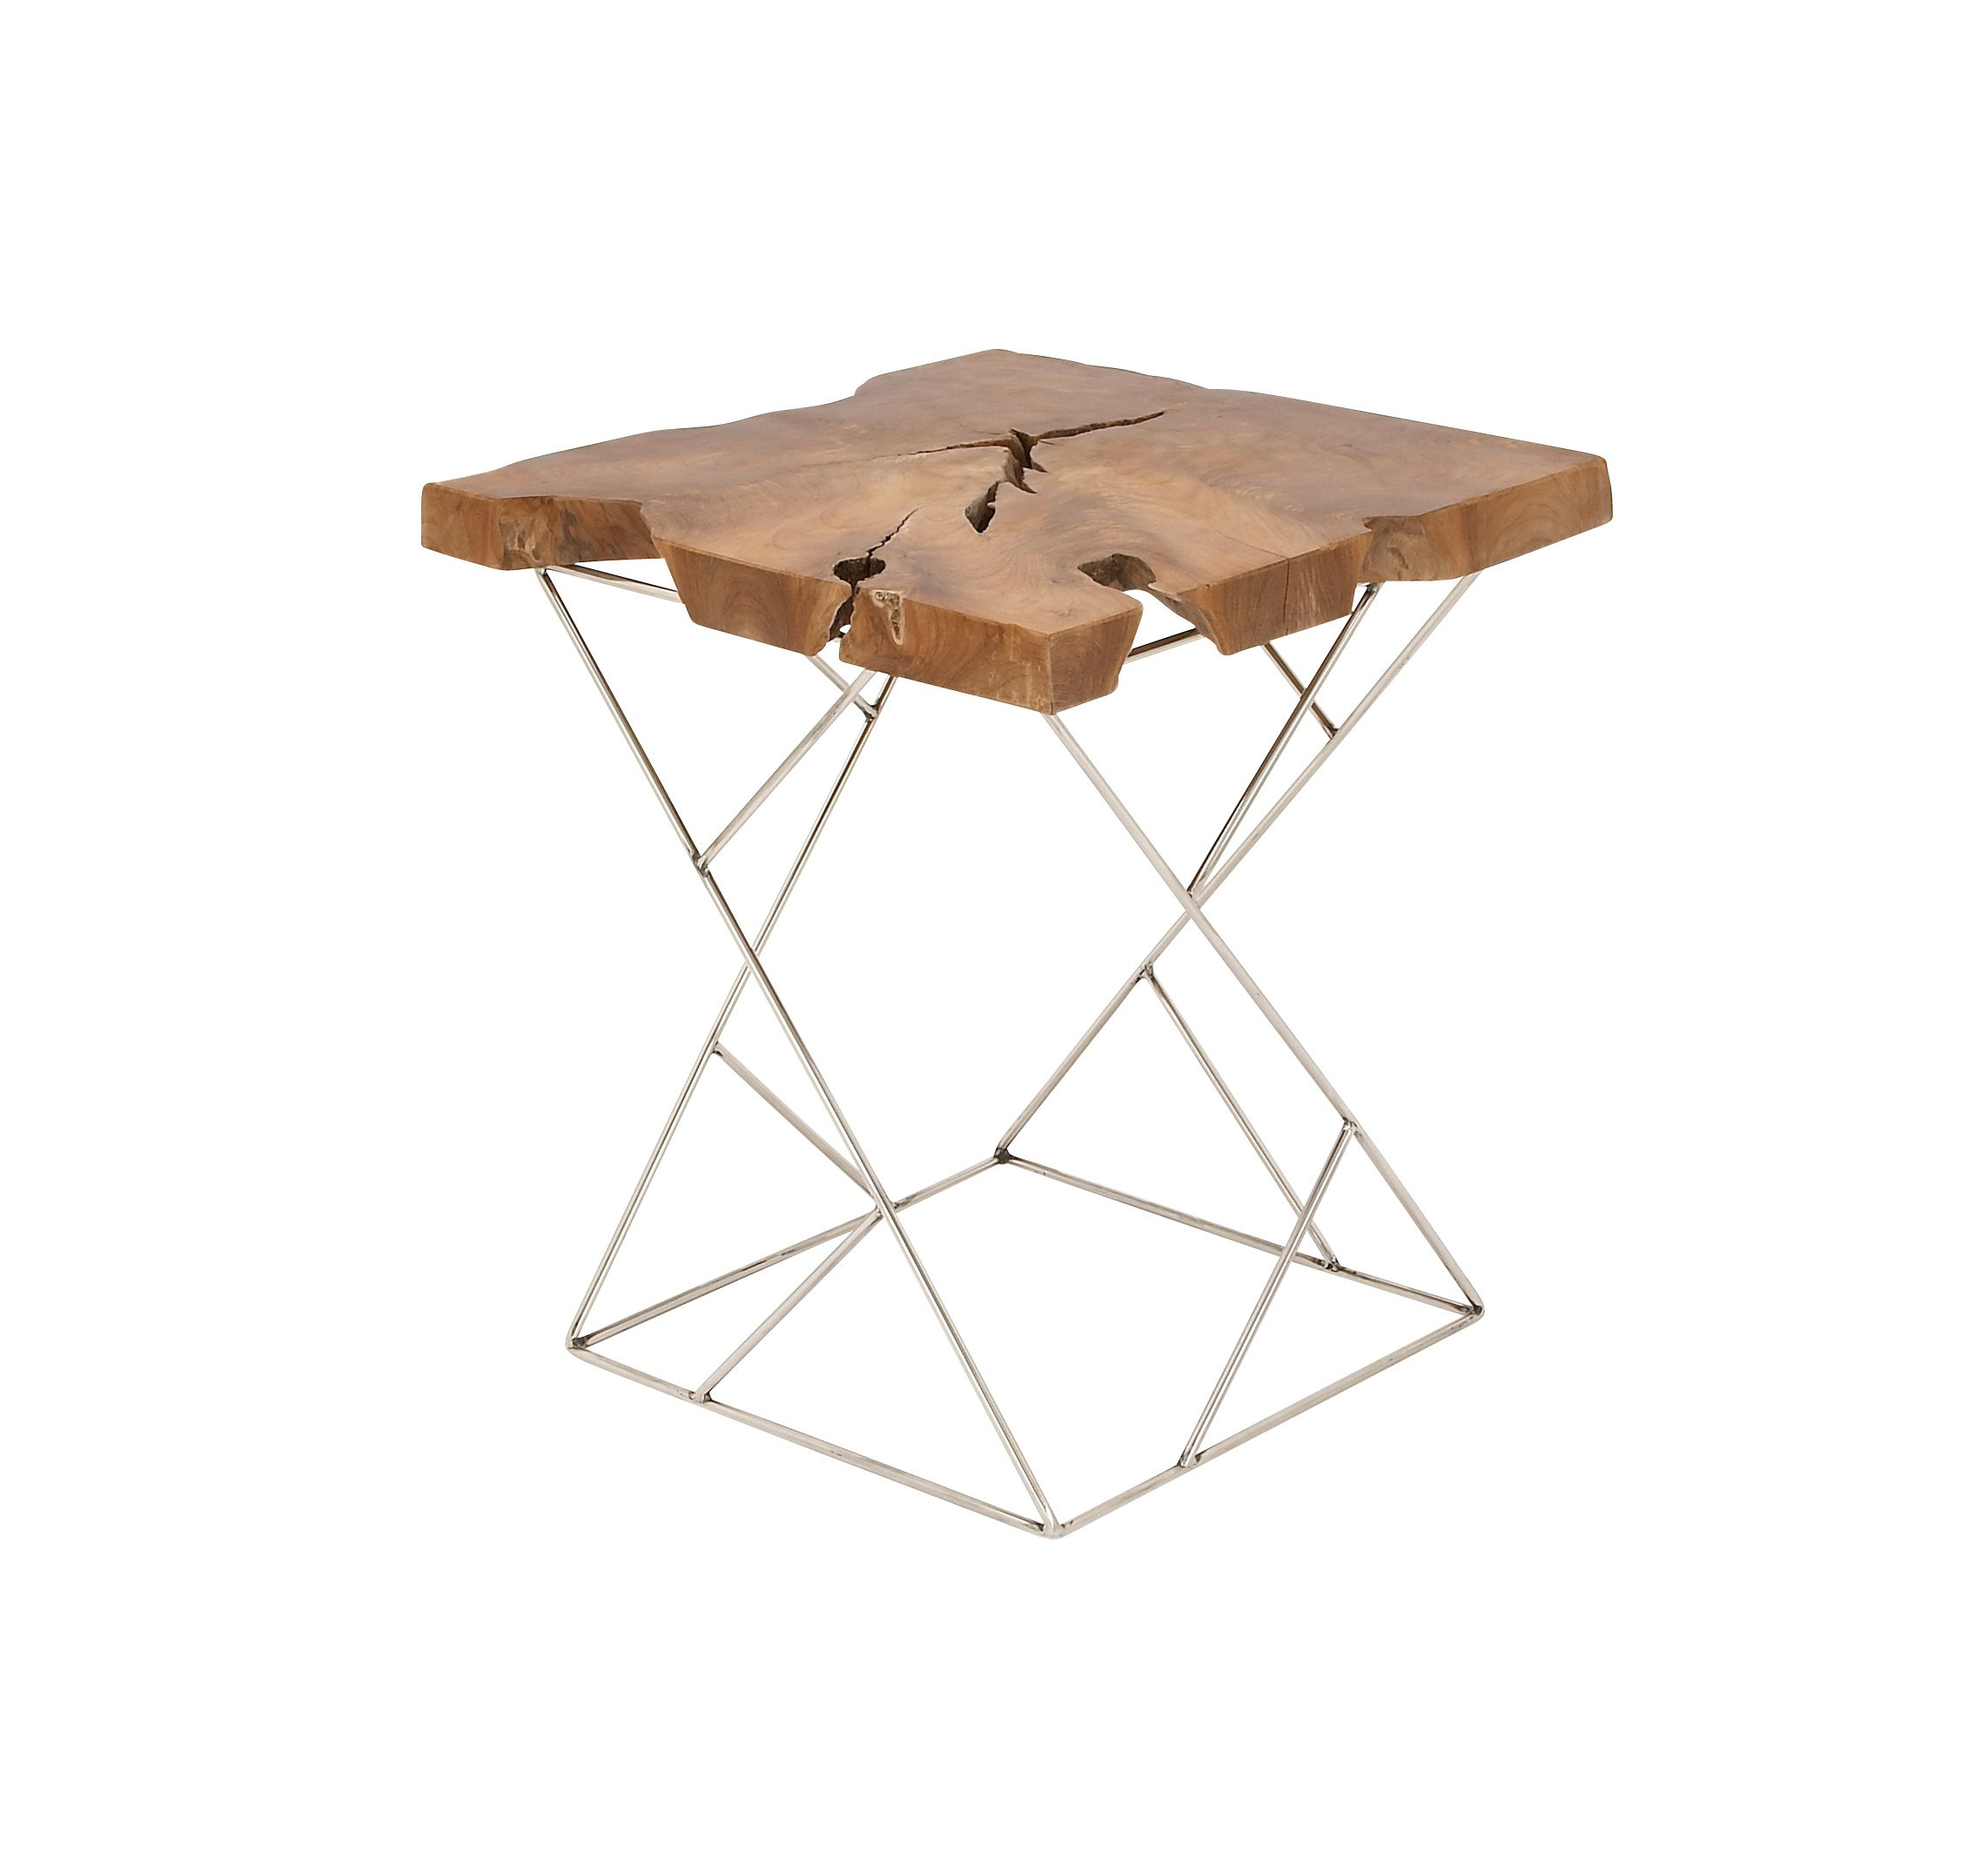 Benzara Antique Colonial Quirky Teak Metal Side Table, 21'' H x 19'' L, Natural Wood Brown and Silver